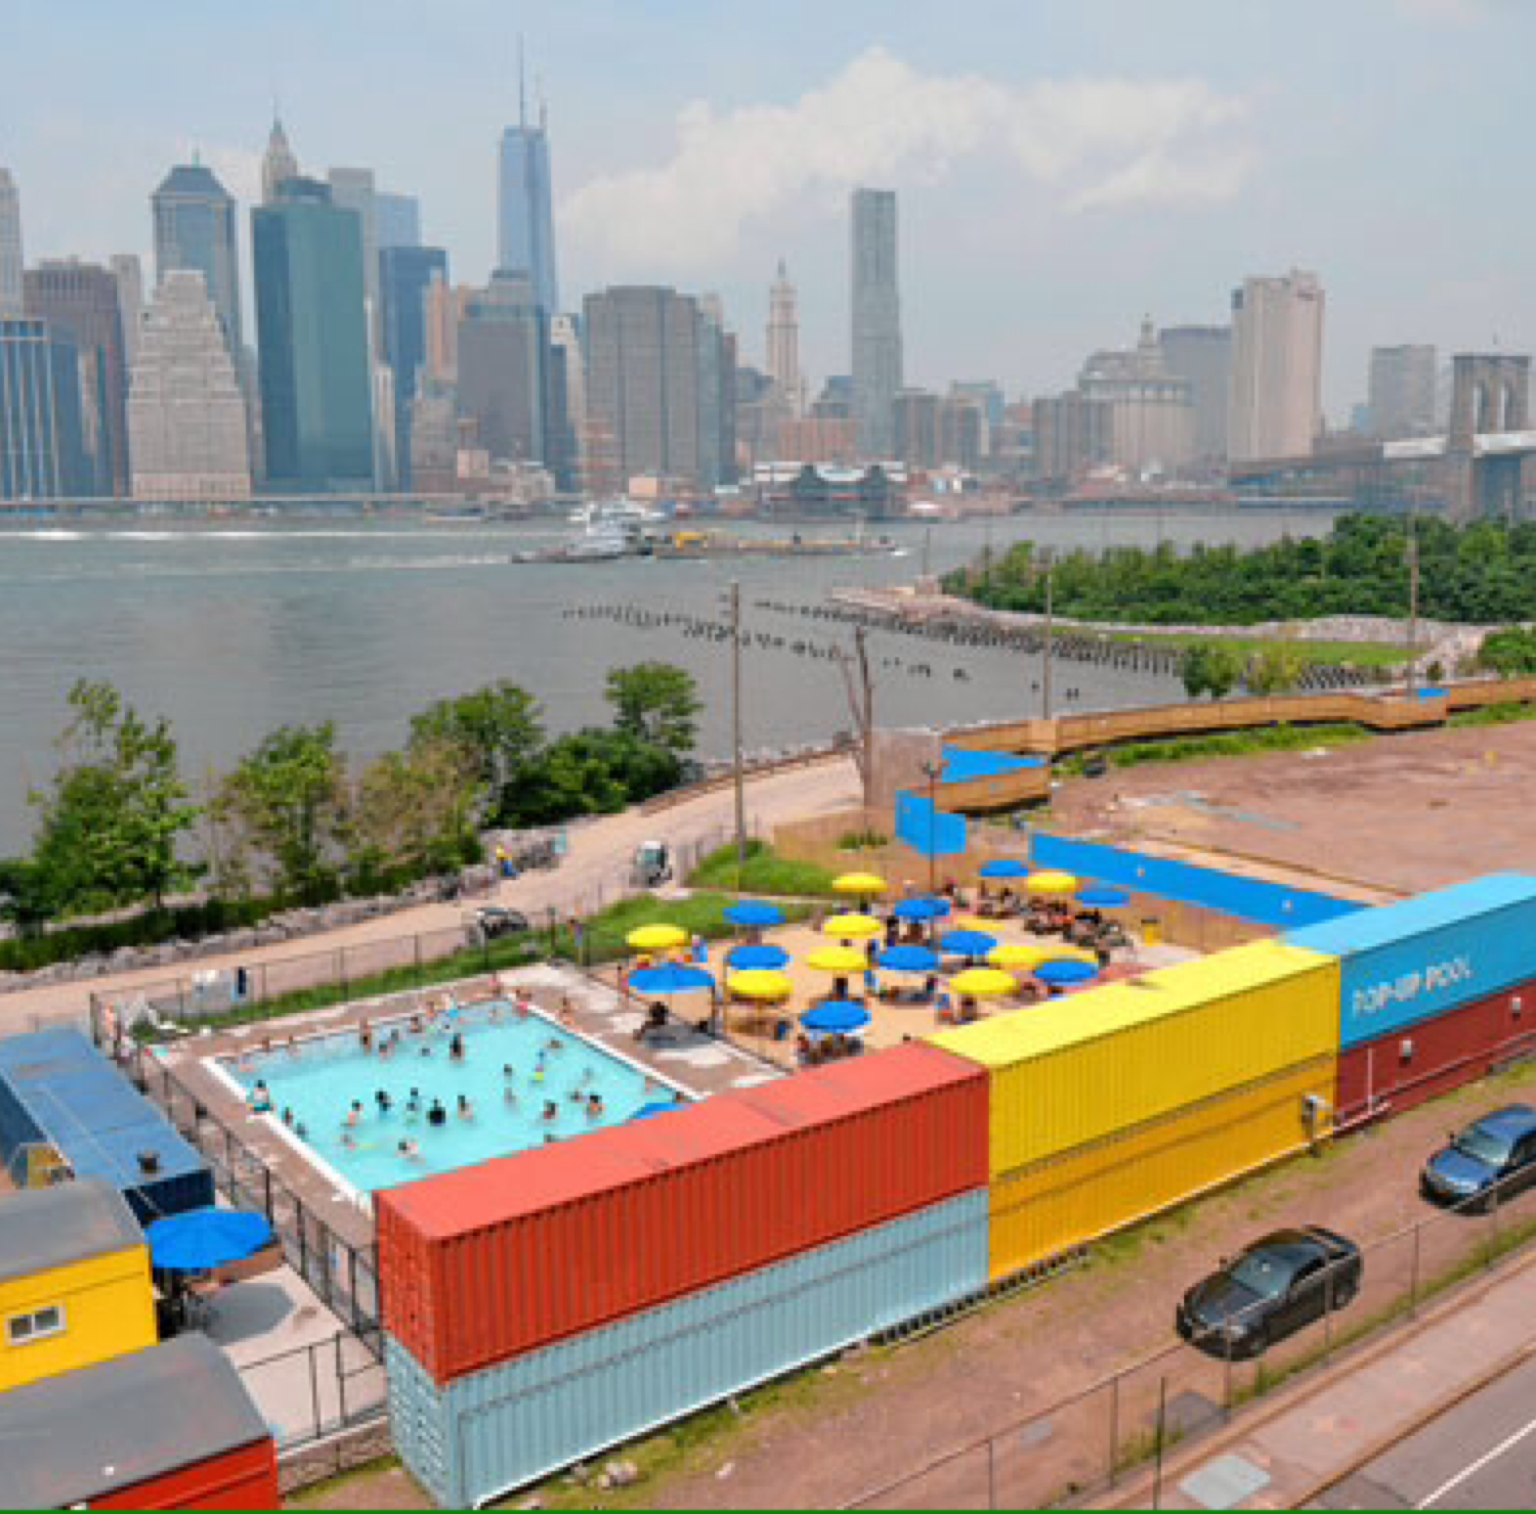 Yuggler Brooklyn Bridge Park Pop Up Pool